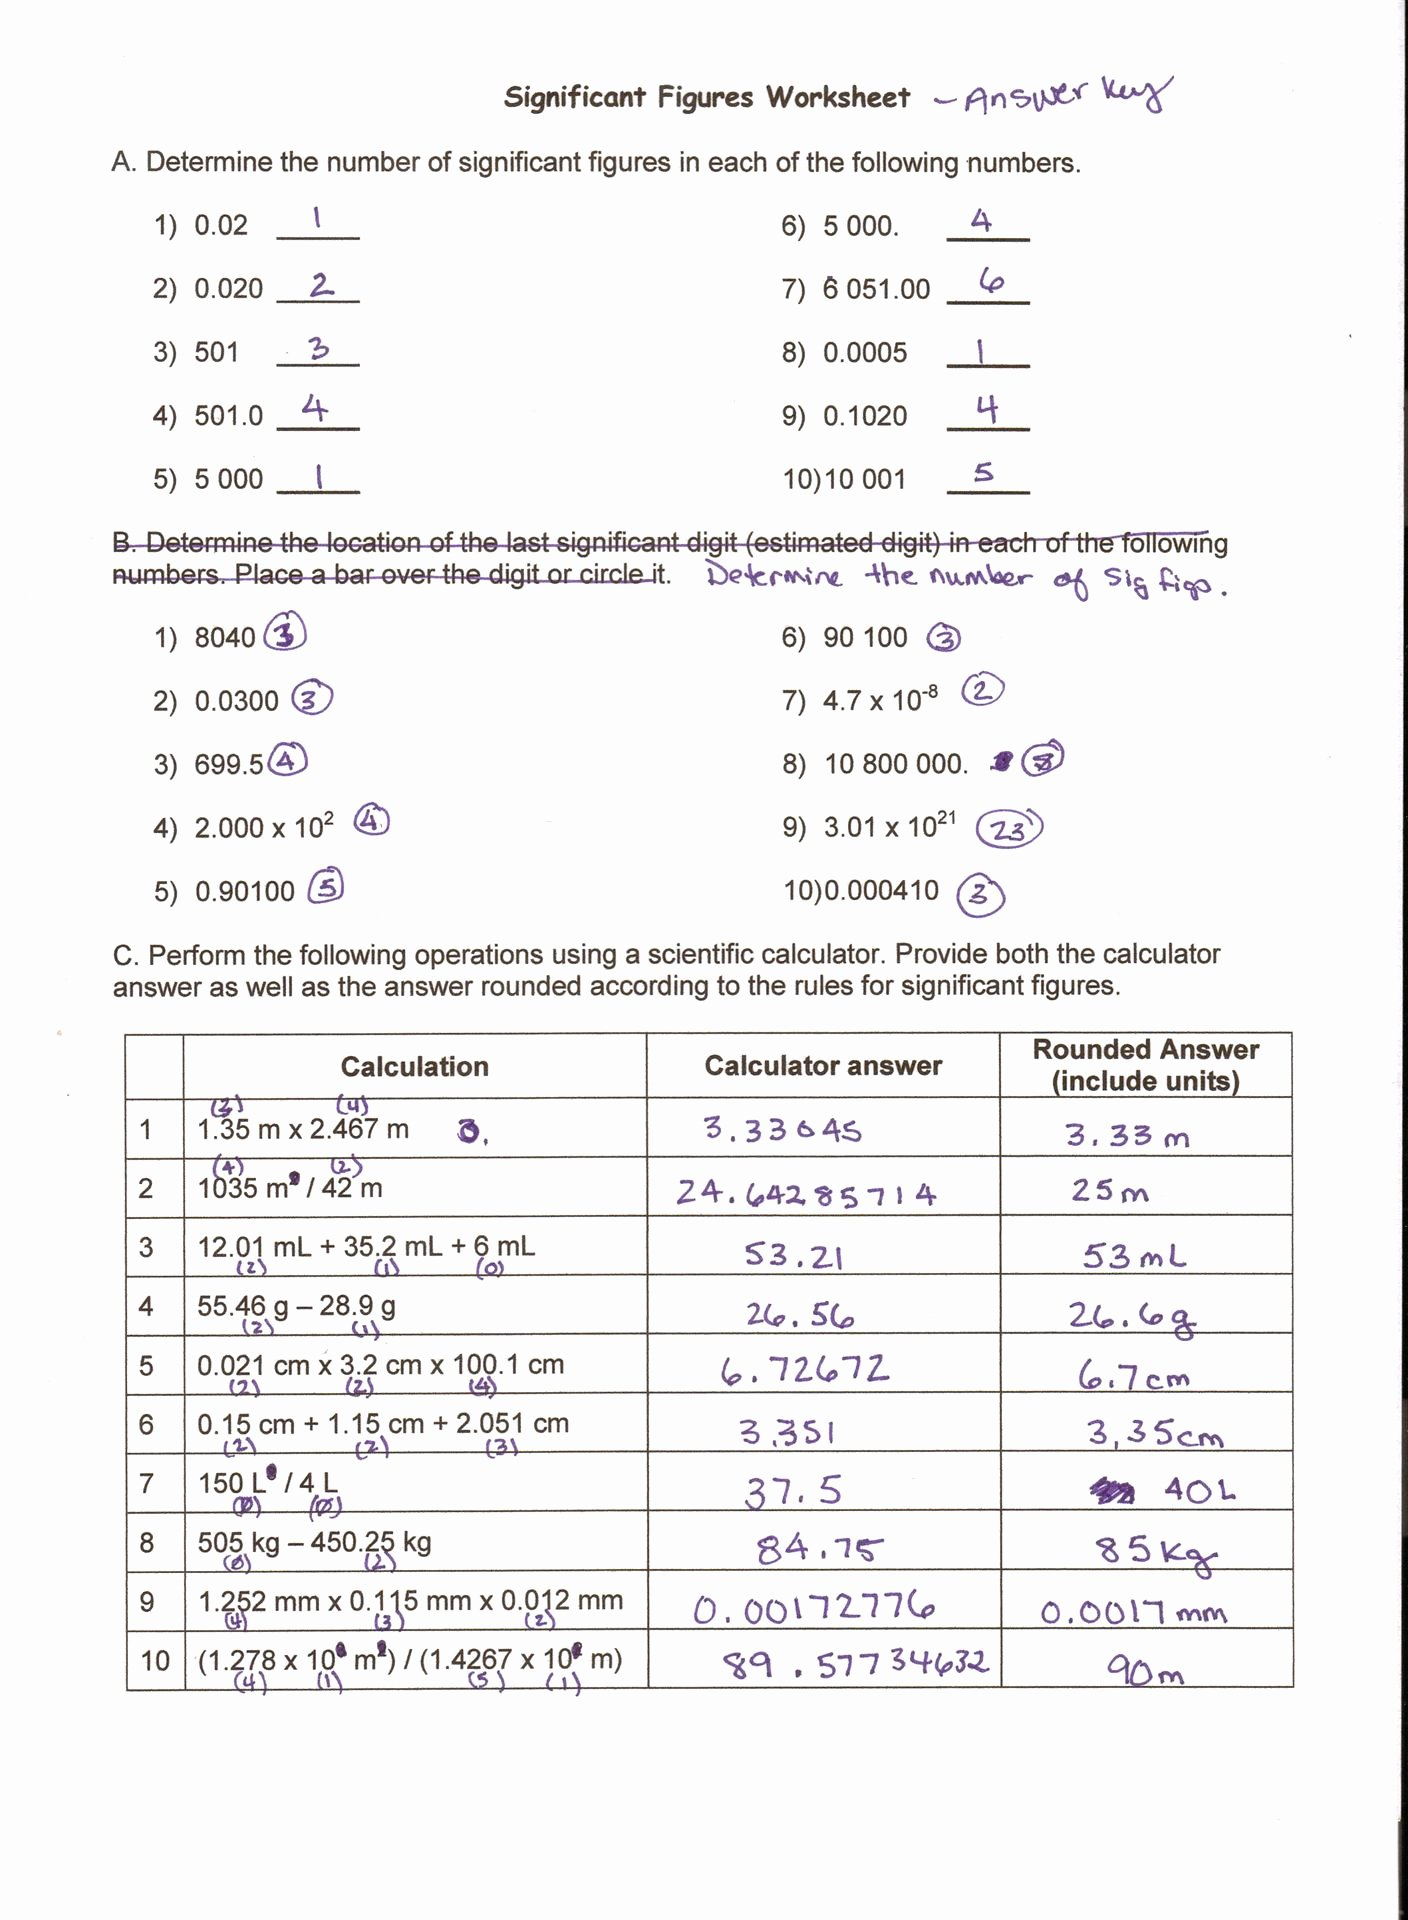 Metric Conversion Worksheet Answer Key Inspirational New 550 Counting atoms Worksheet Answer